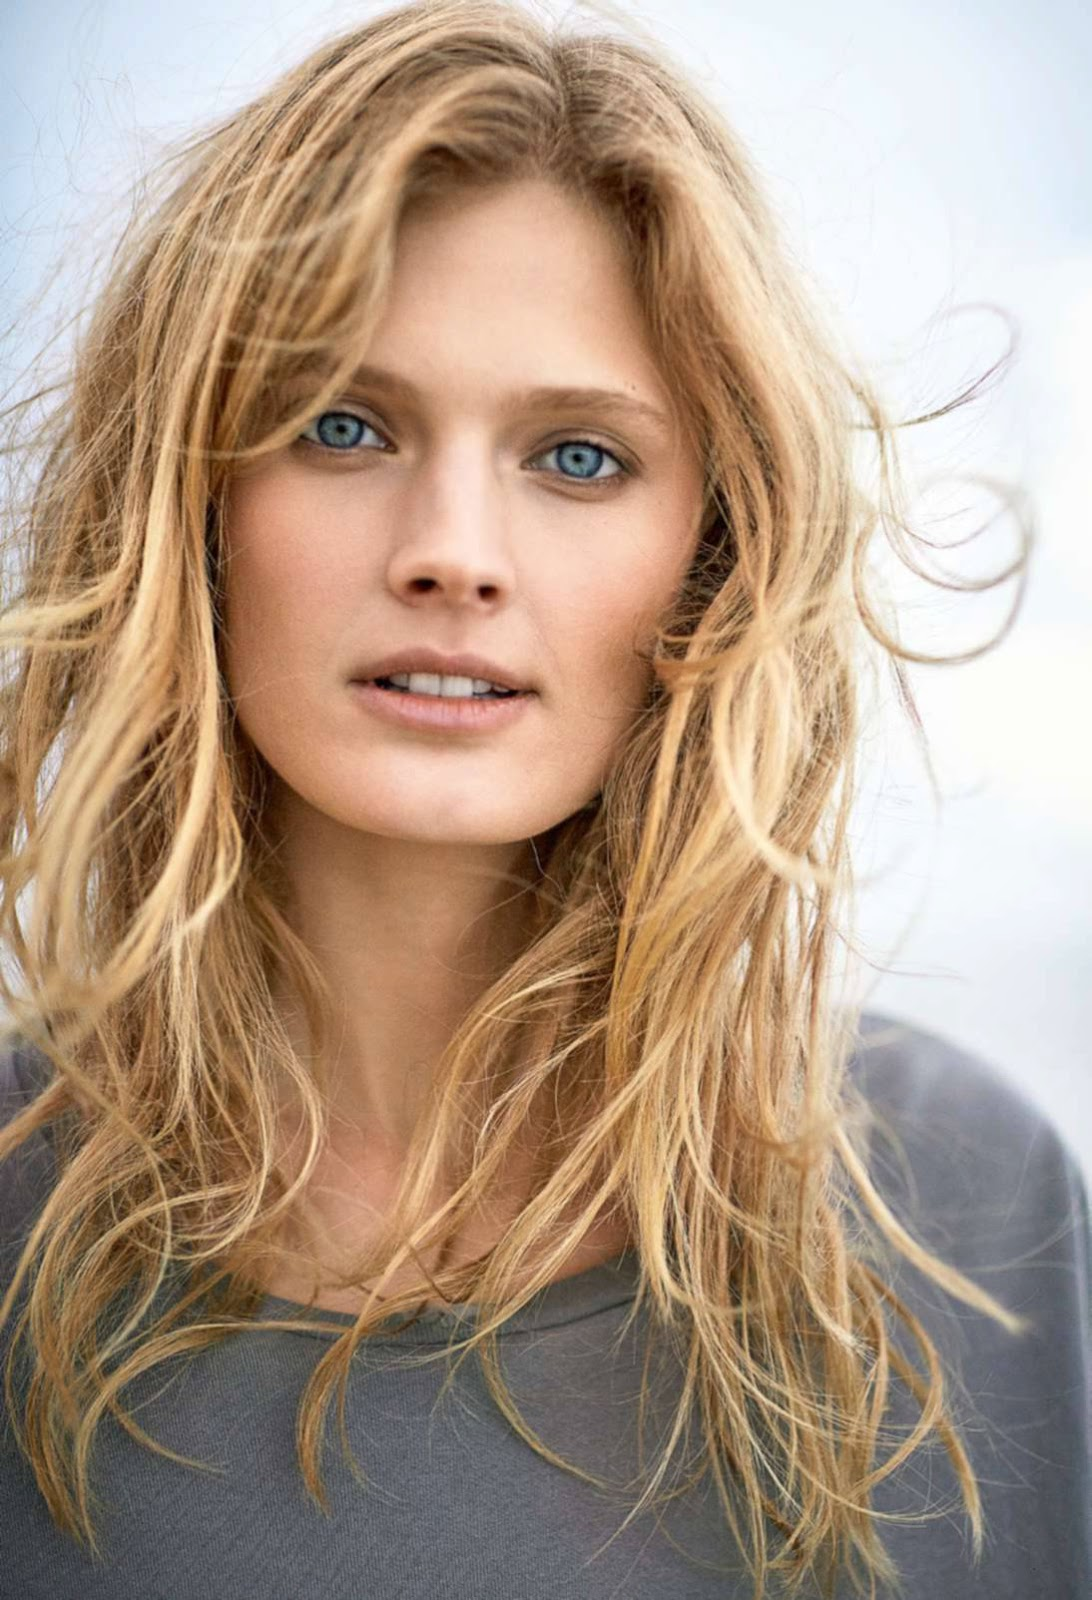 Constance Jablonski nudes (19 photo), pictures Boobs, iCloud, legs 2017